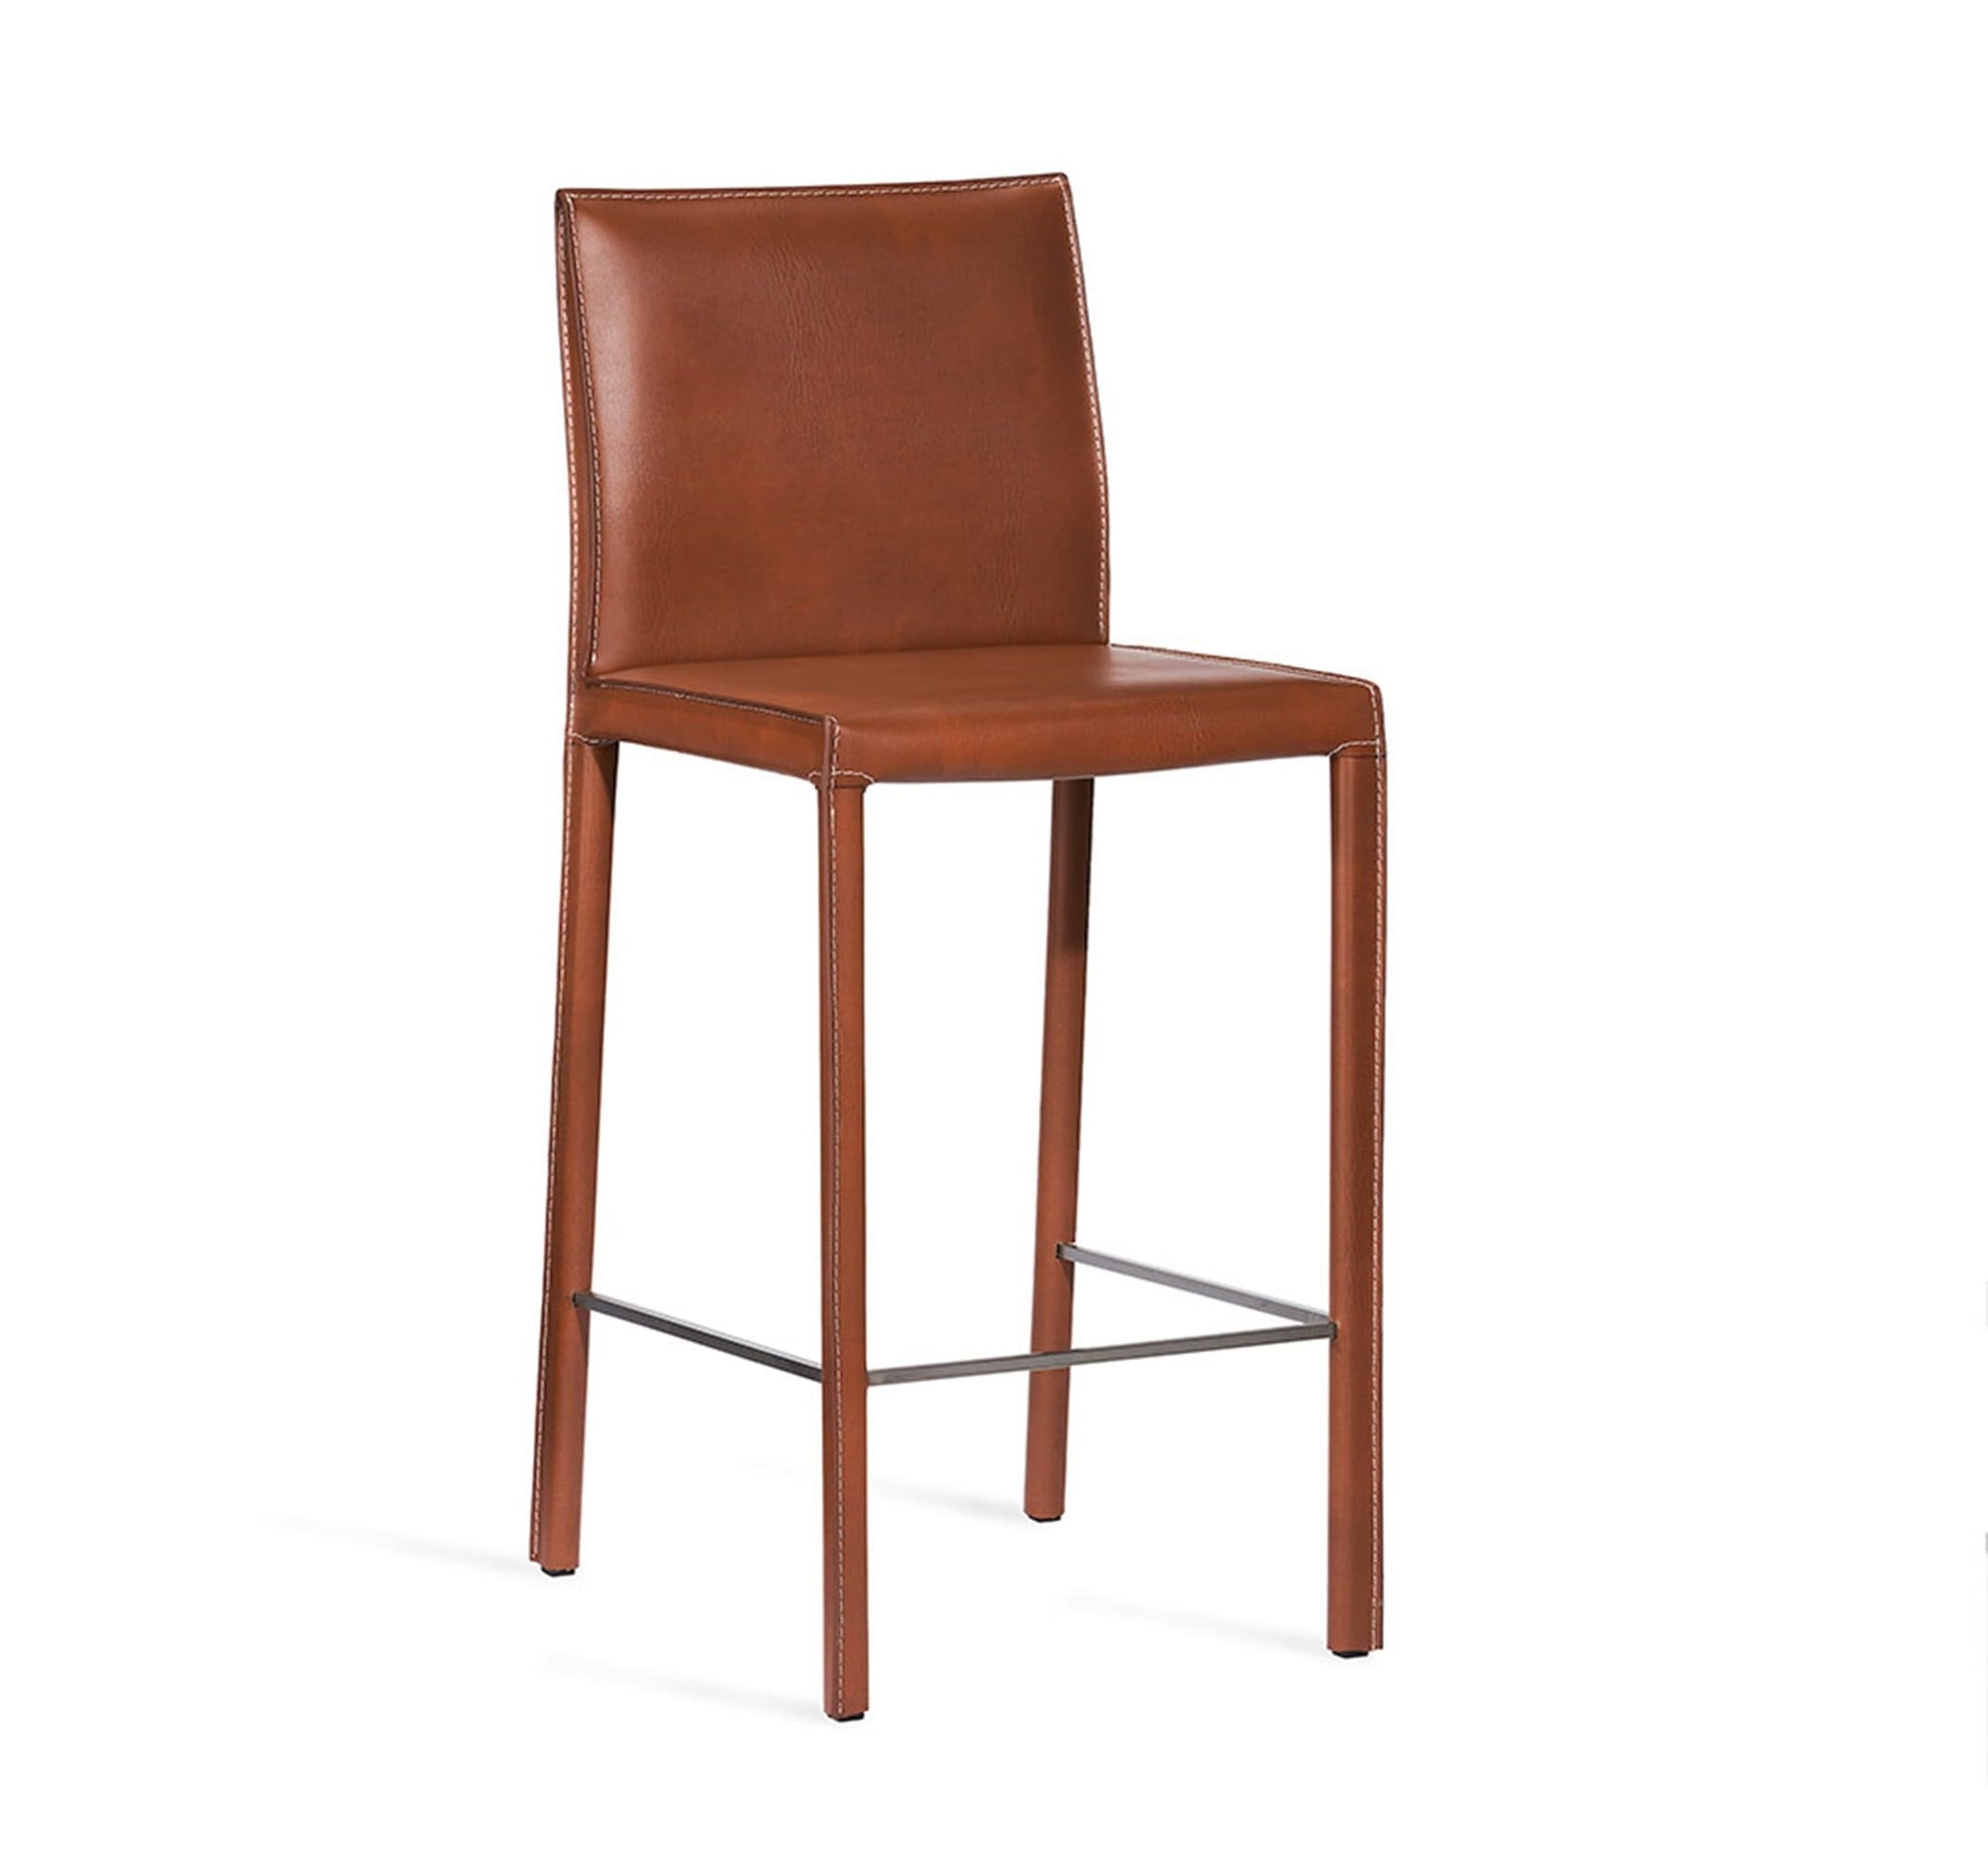 Interlude Home Interlude Home Vera Counter Stool Set of 2 - Brushed Steel & Cognac 149026S2